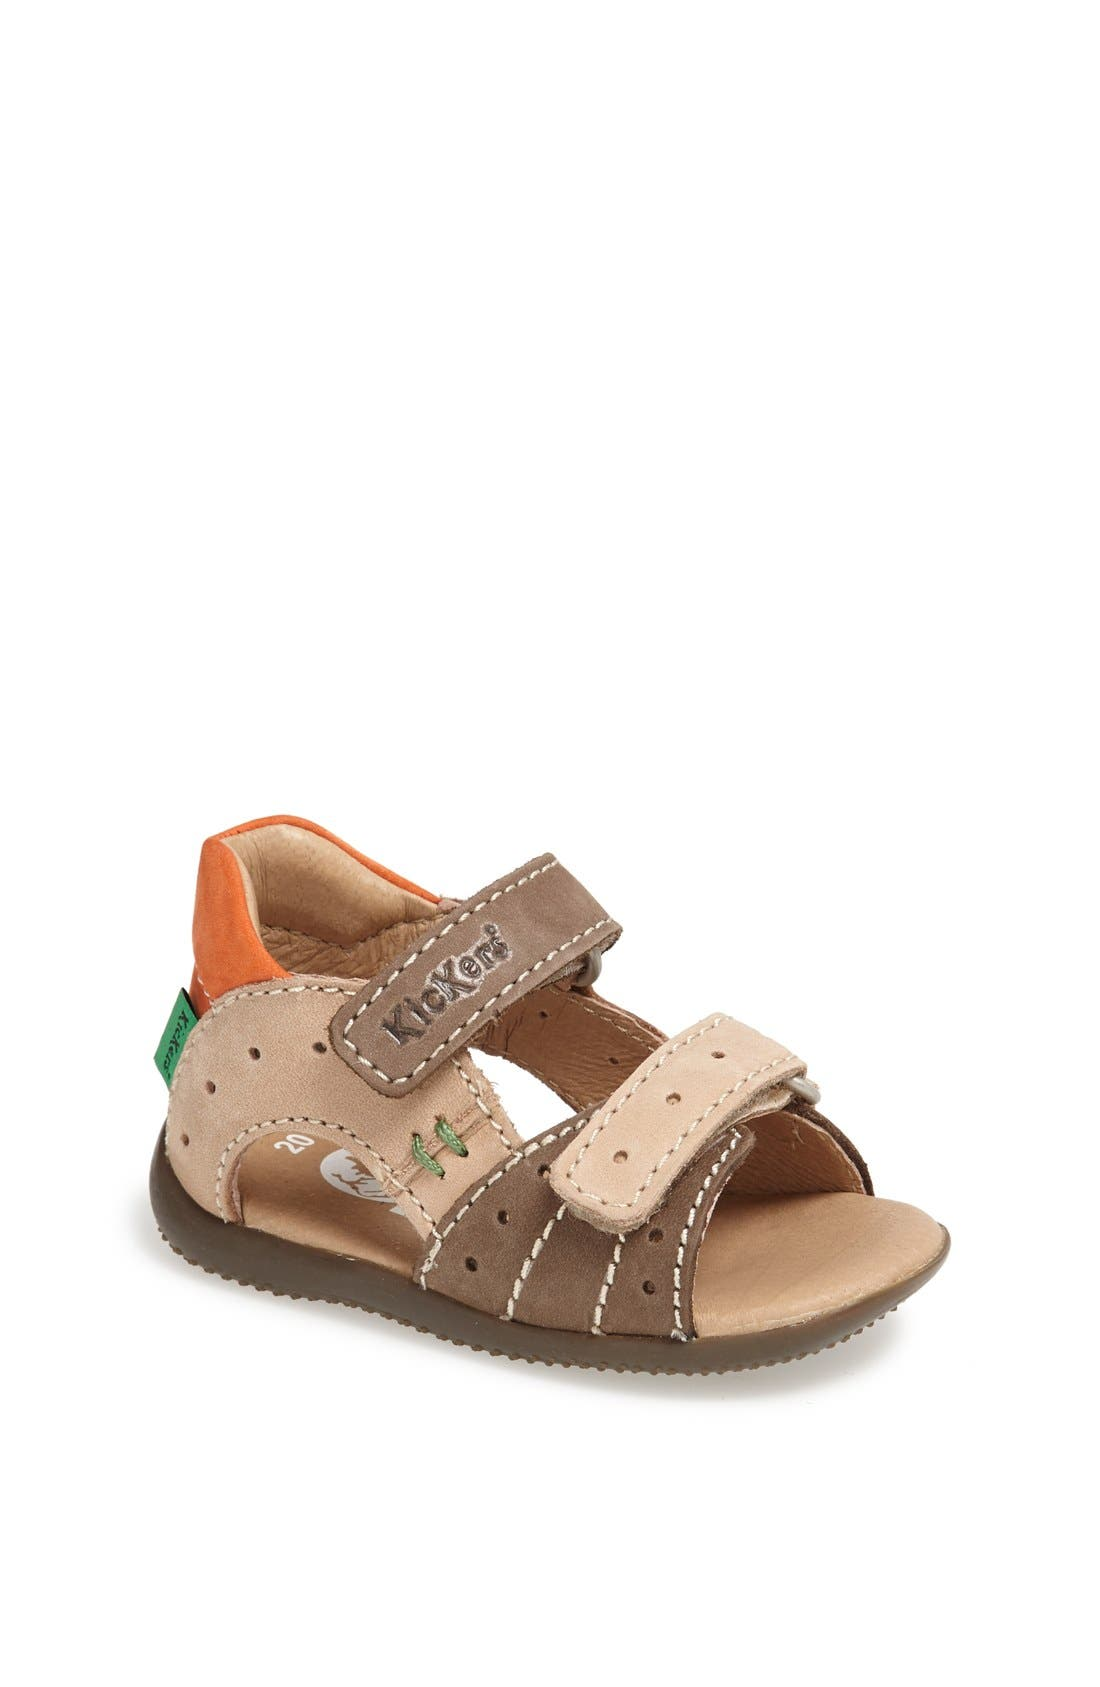 Alternate Image 1 Selected - Kickers 'Boping 2' Sandal (Baby, Walker & Toddler)